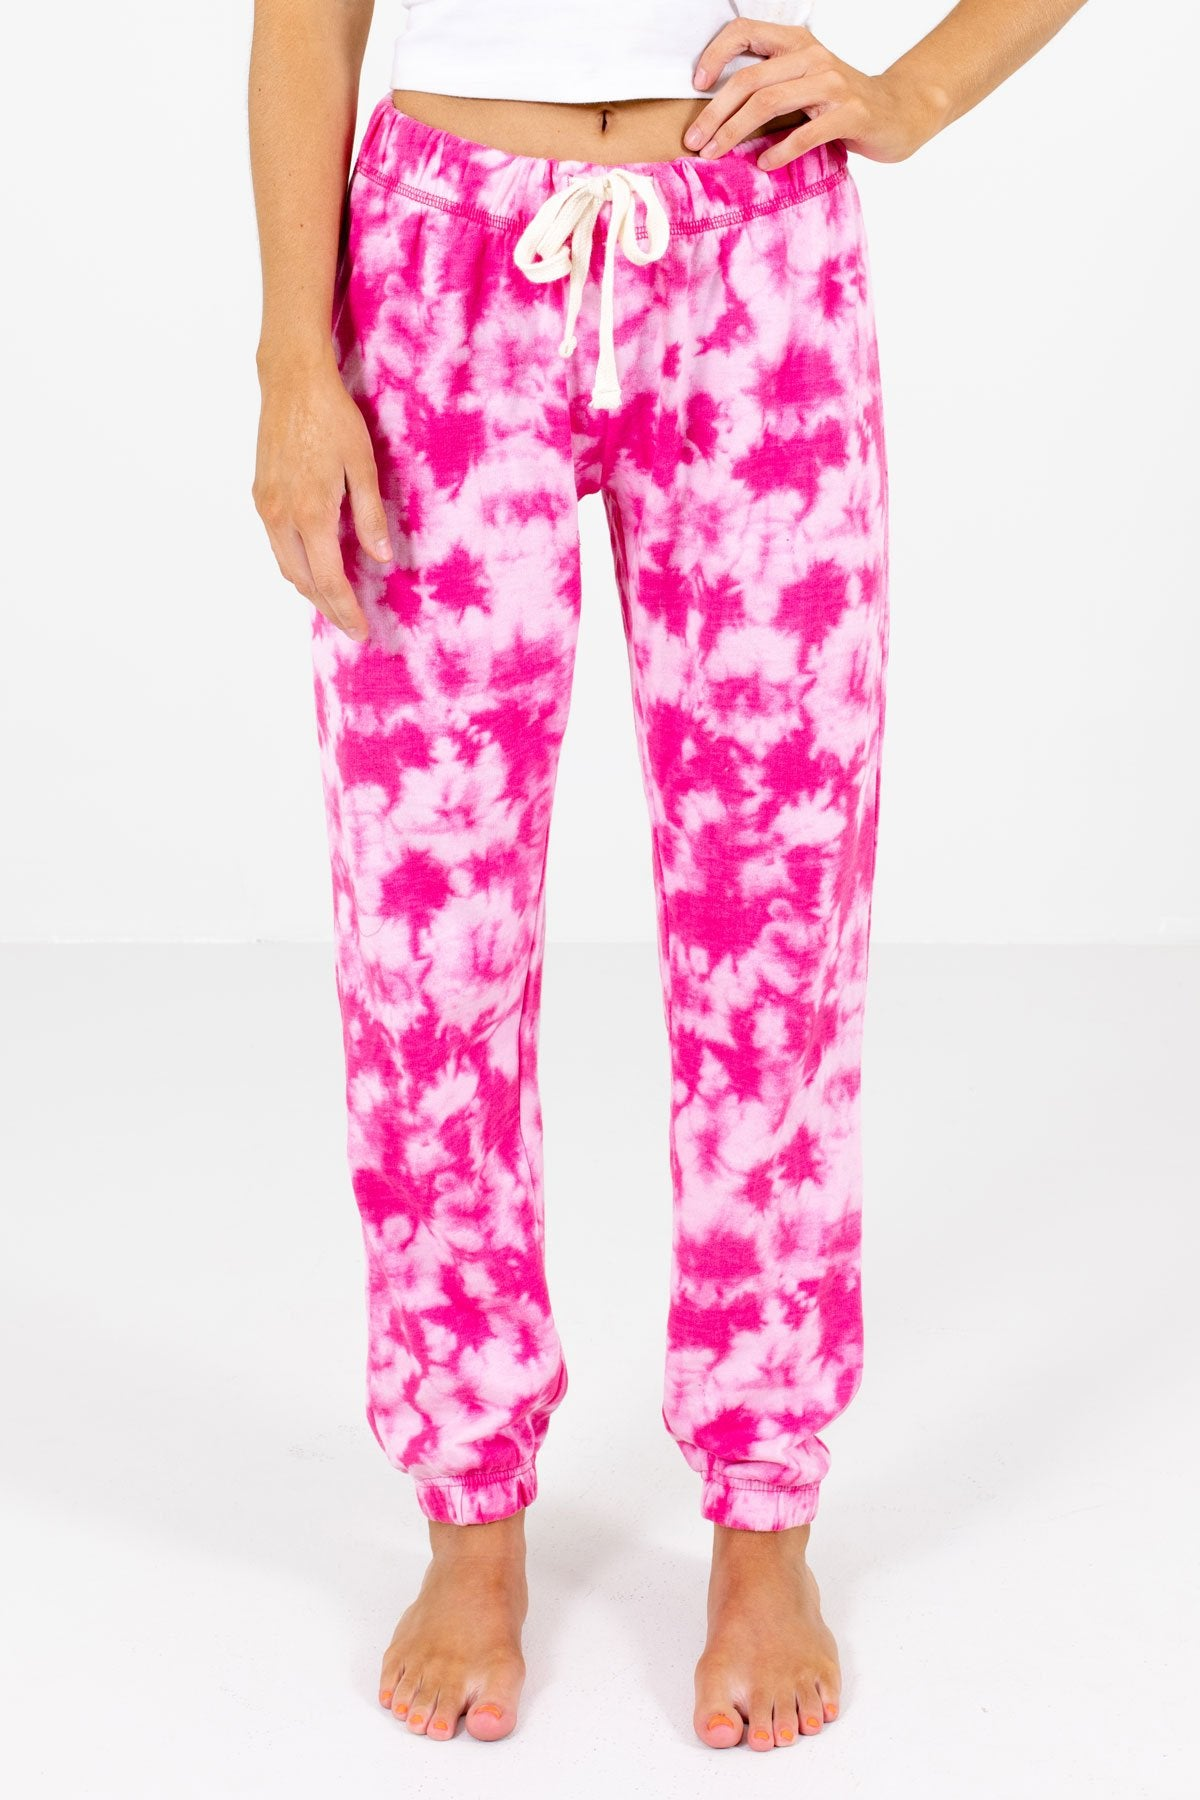 Pink Tie-Dye Print Boutique Joggers for Women